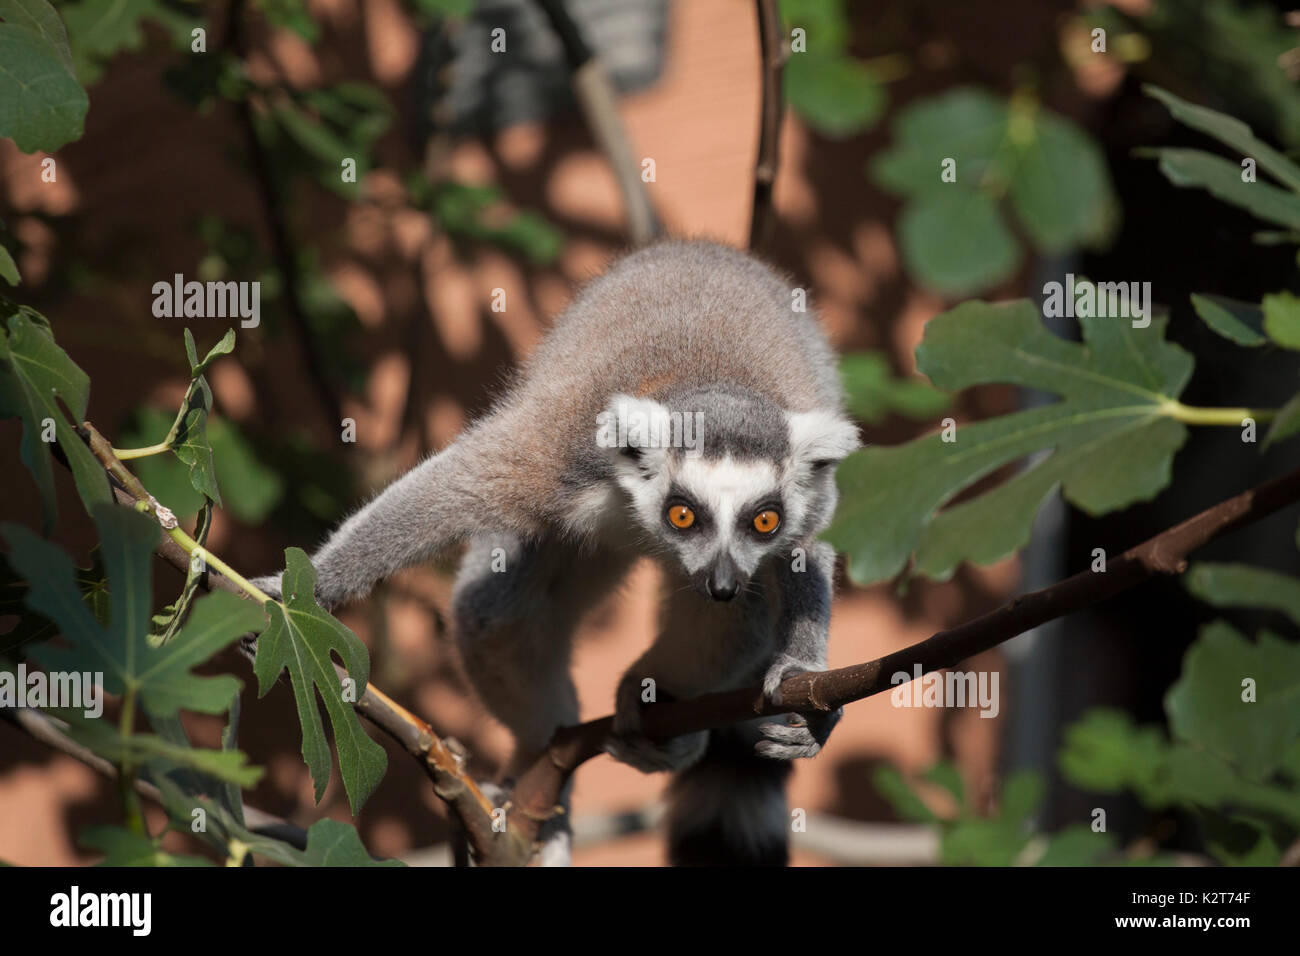 Gray with white striped ring tailed lemur in an animal park sitting on a branch - Stock Image